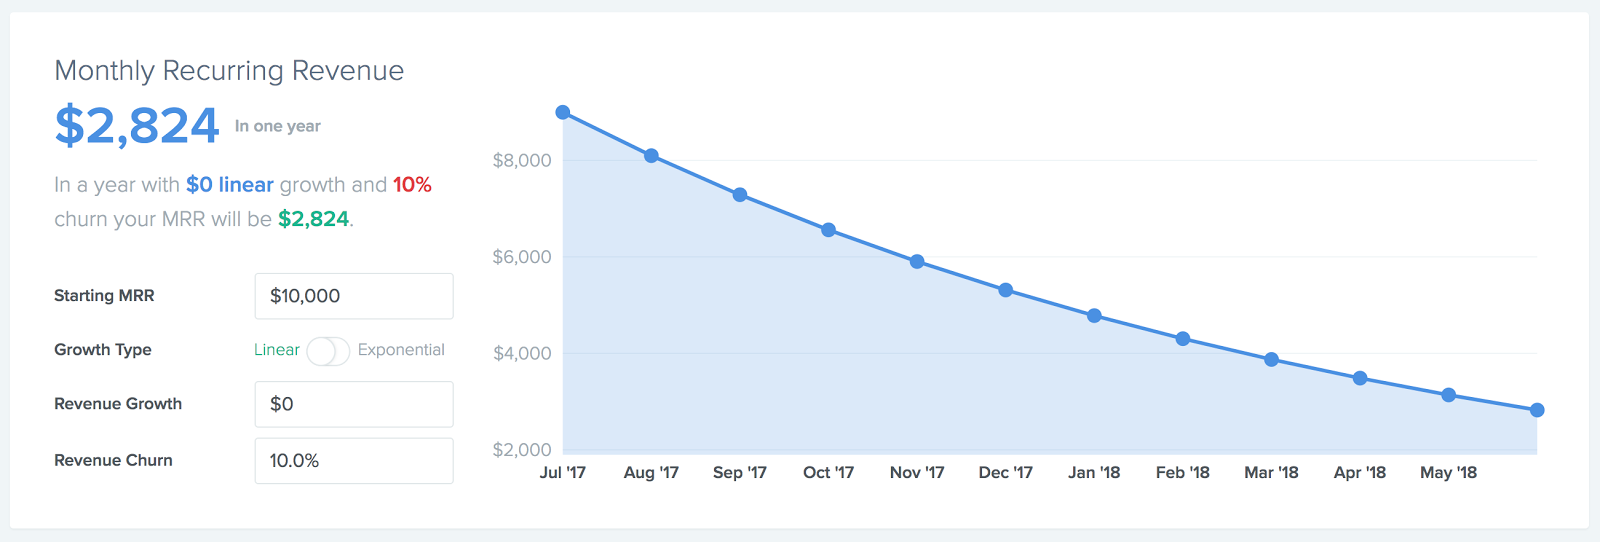 Image of a revenue churn graph at 10% linear churn